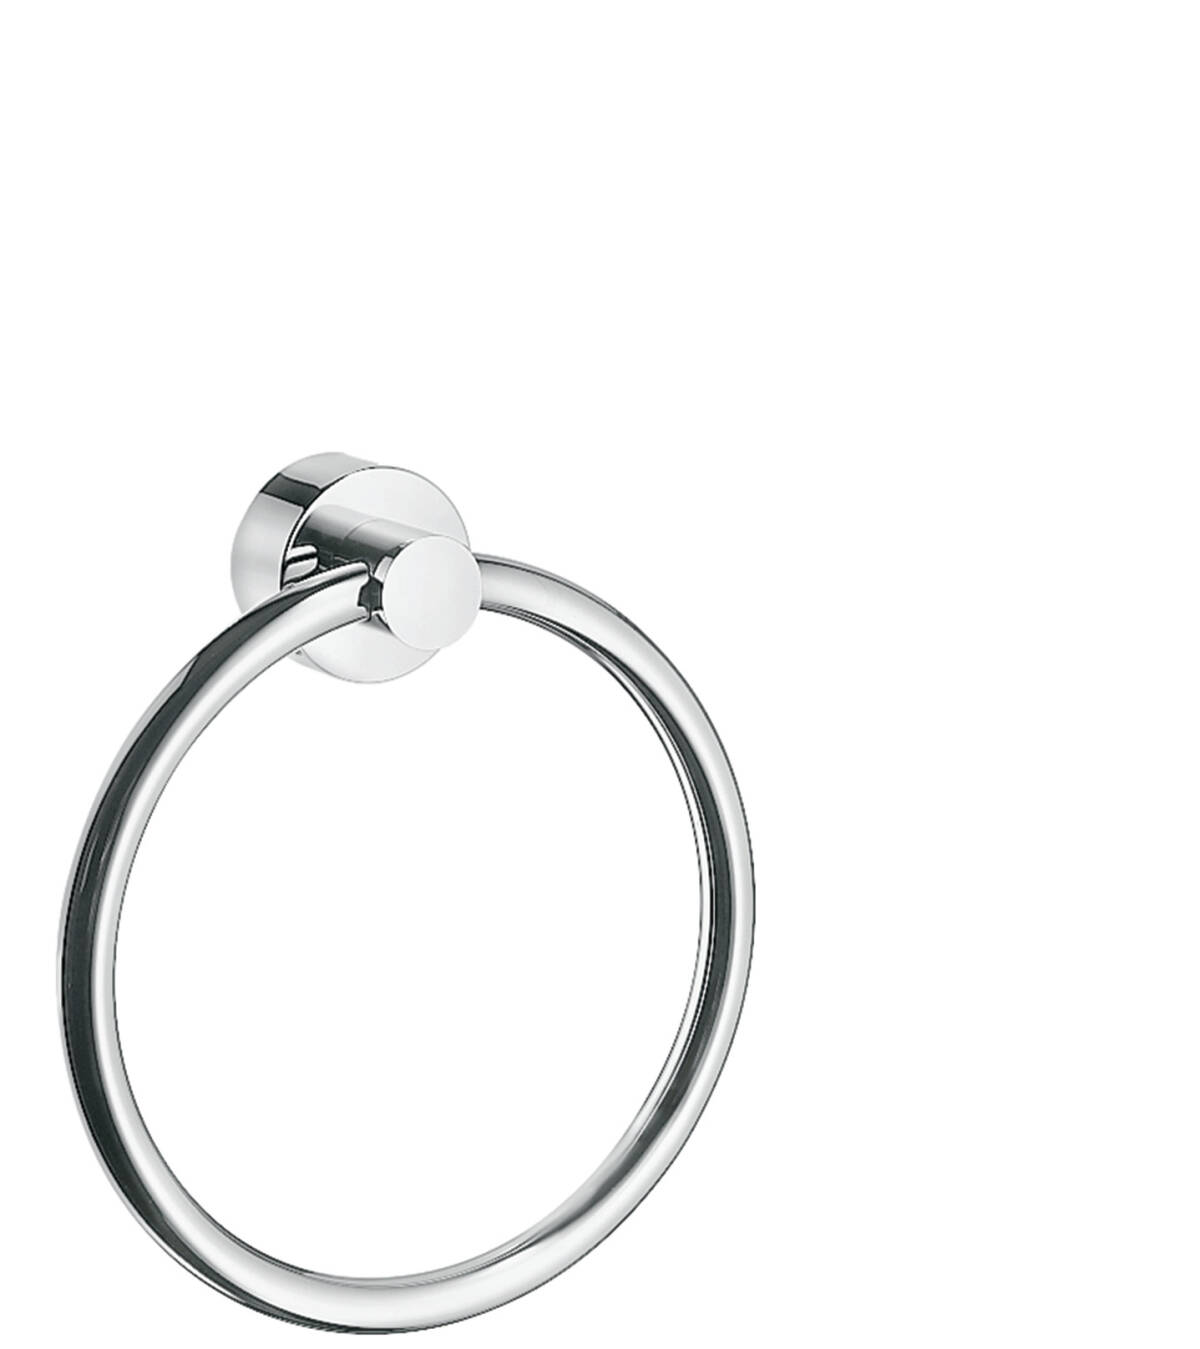 Towel ring, Brushed Gold Optic, 41521250